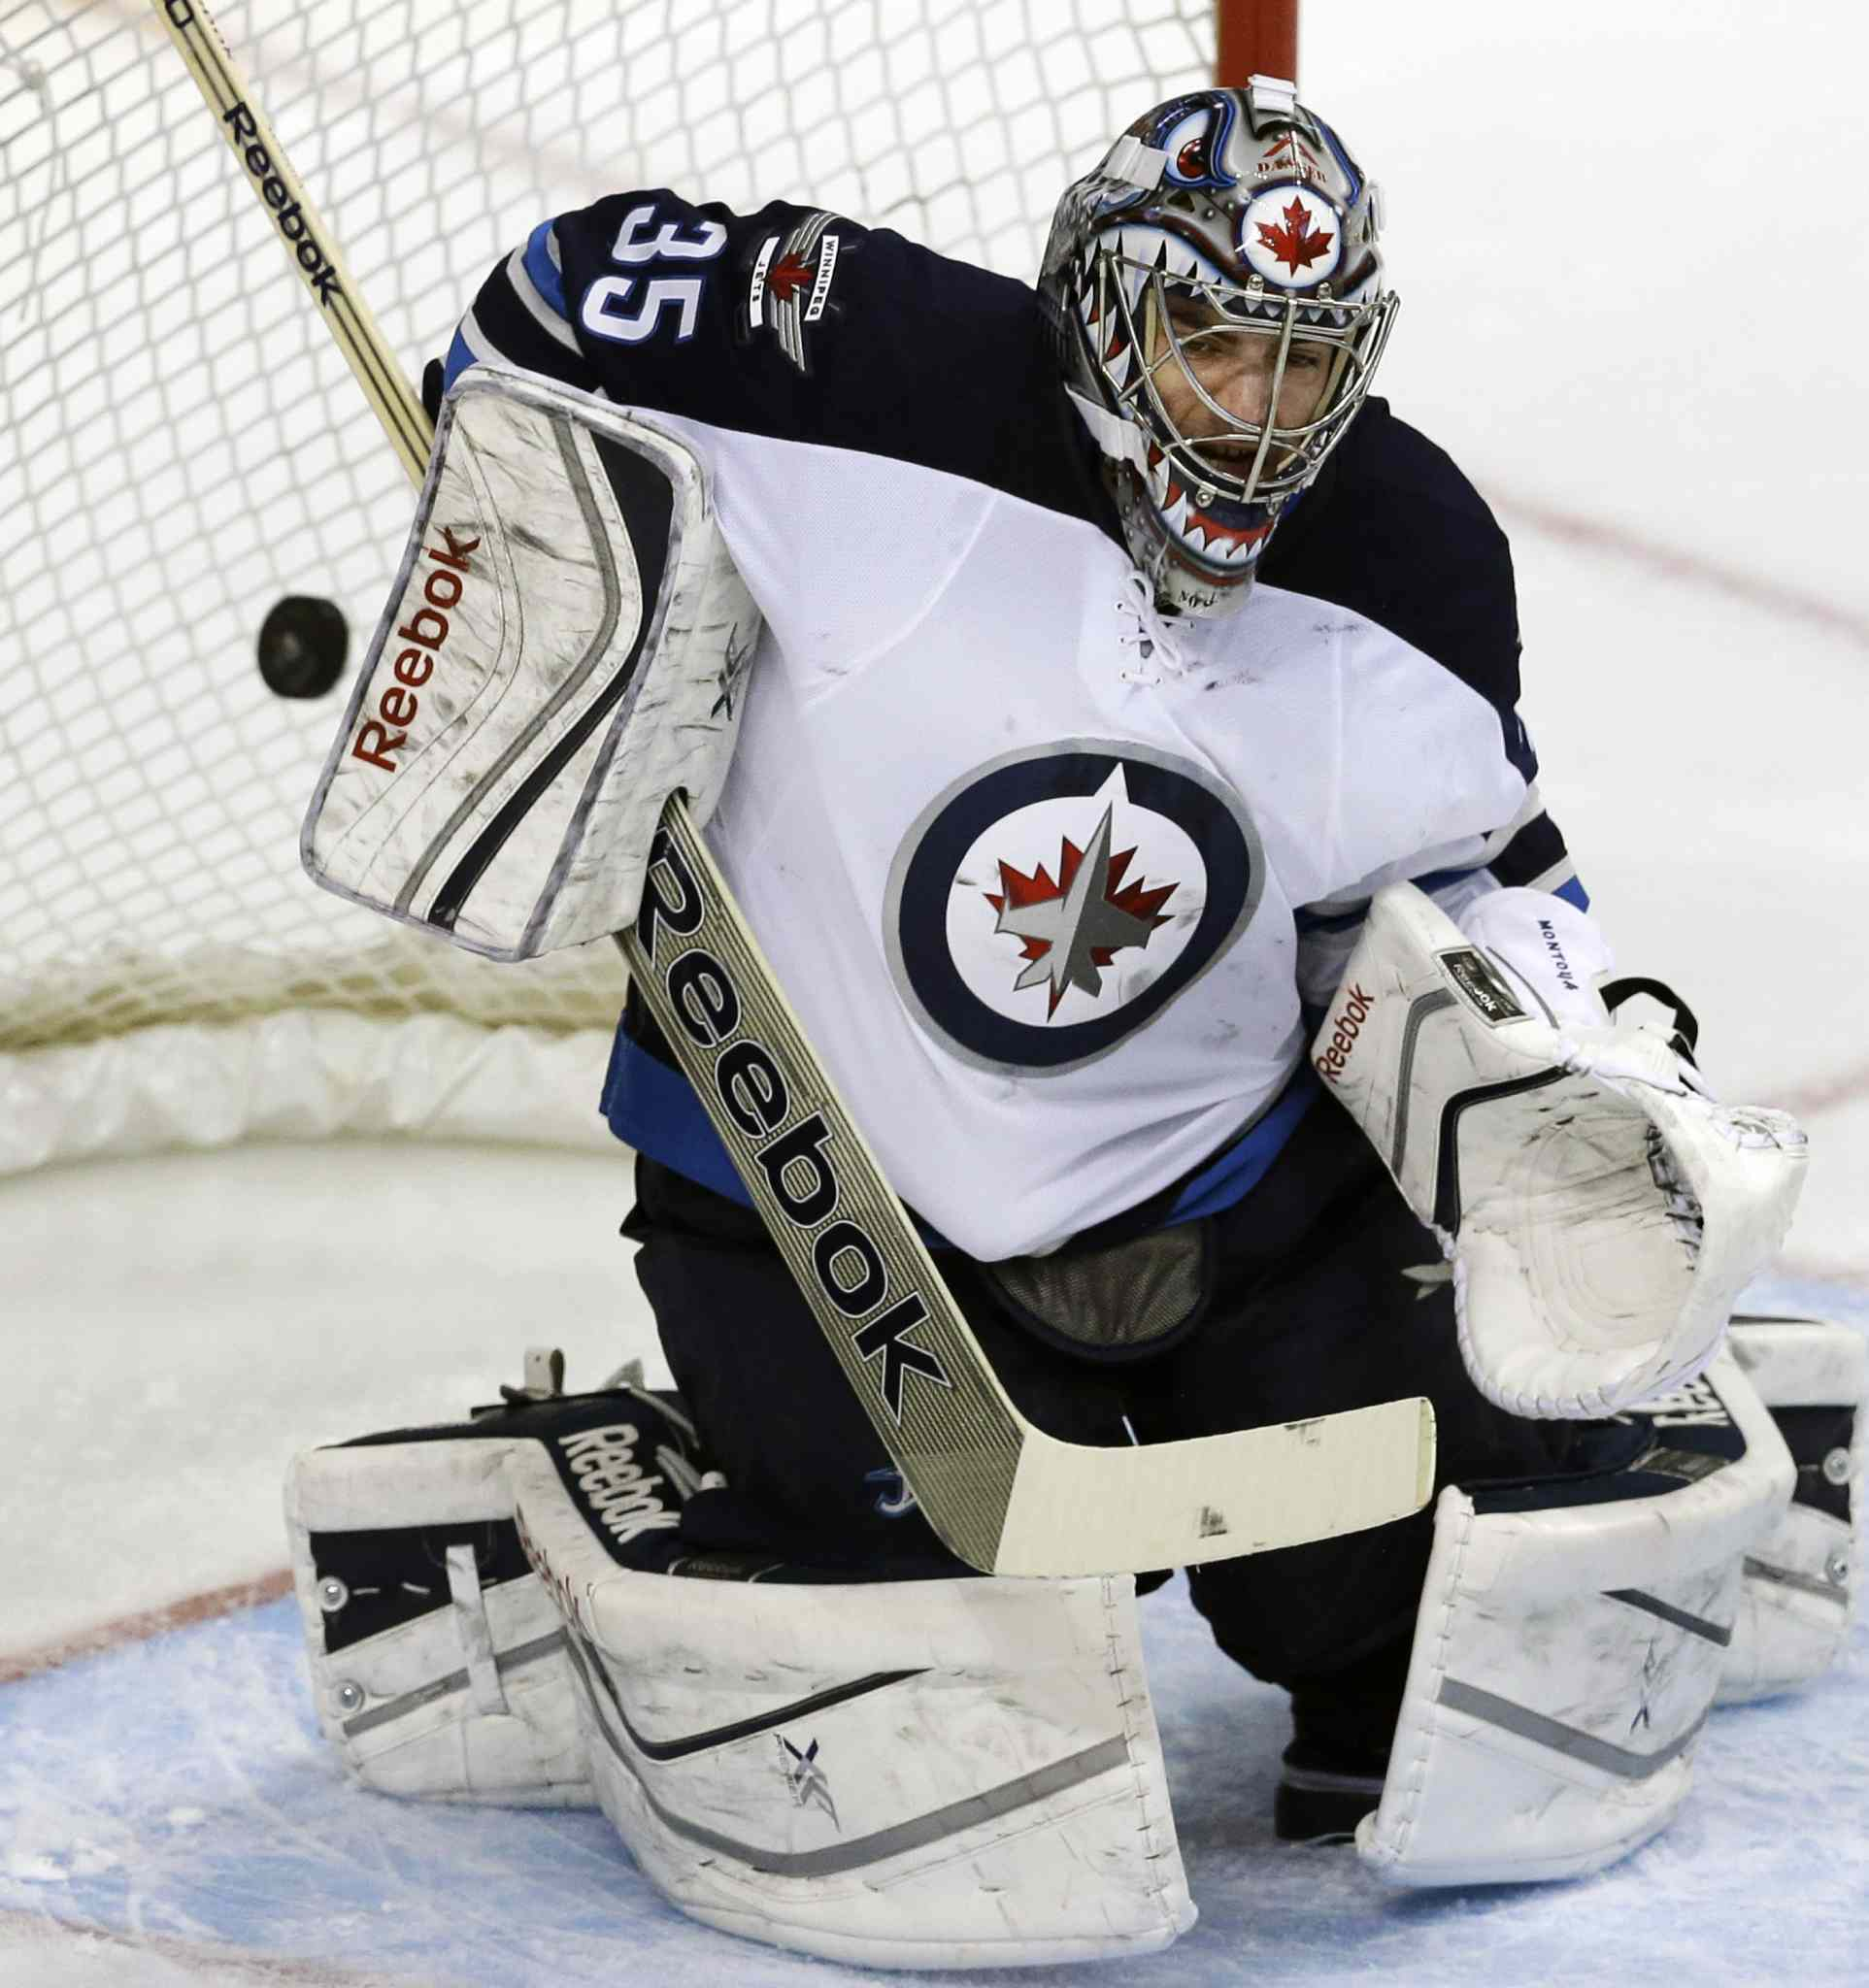 Winnipeg Jets goalie Al Montoya can't stop the shot by Dallas Stars forward Ray Whitney during the first period.